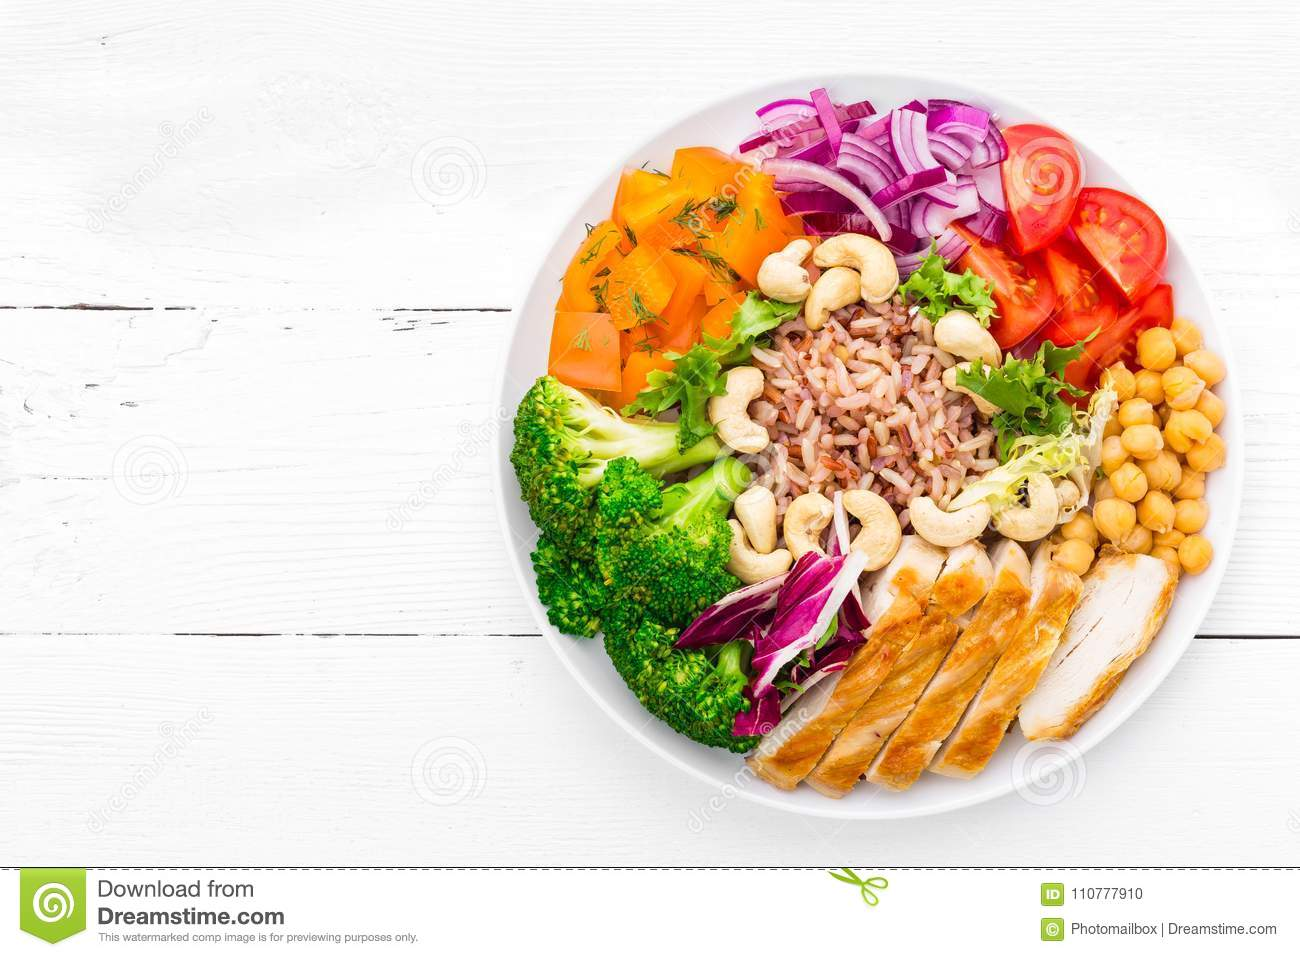 Buddha bowl dish with chicken fillet, brown rice, pepper, tomato, broccoli, onion, chickpea, fresh lettuce salad, cashew and walnu